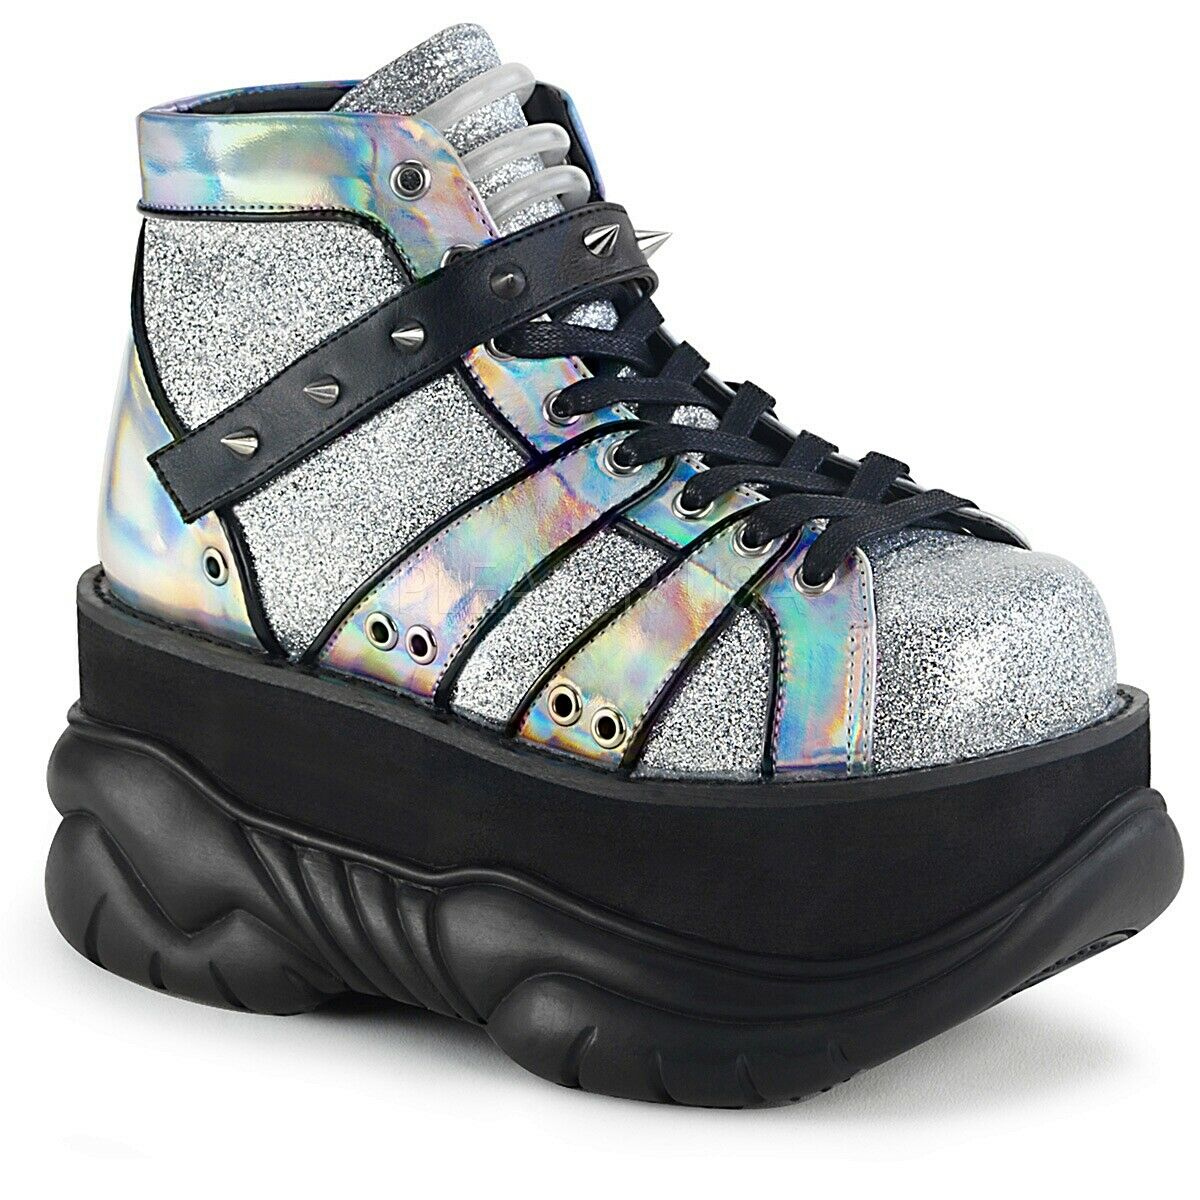 Demonia 3  Platform Silver Glitter Sneaker shoes Gothic Cyber 5 6 7 8 9 10 11 12